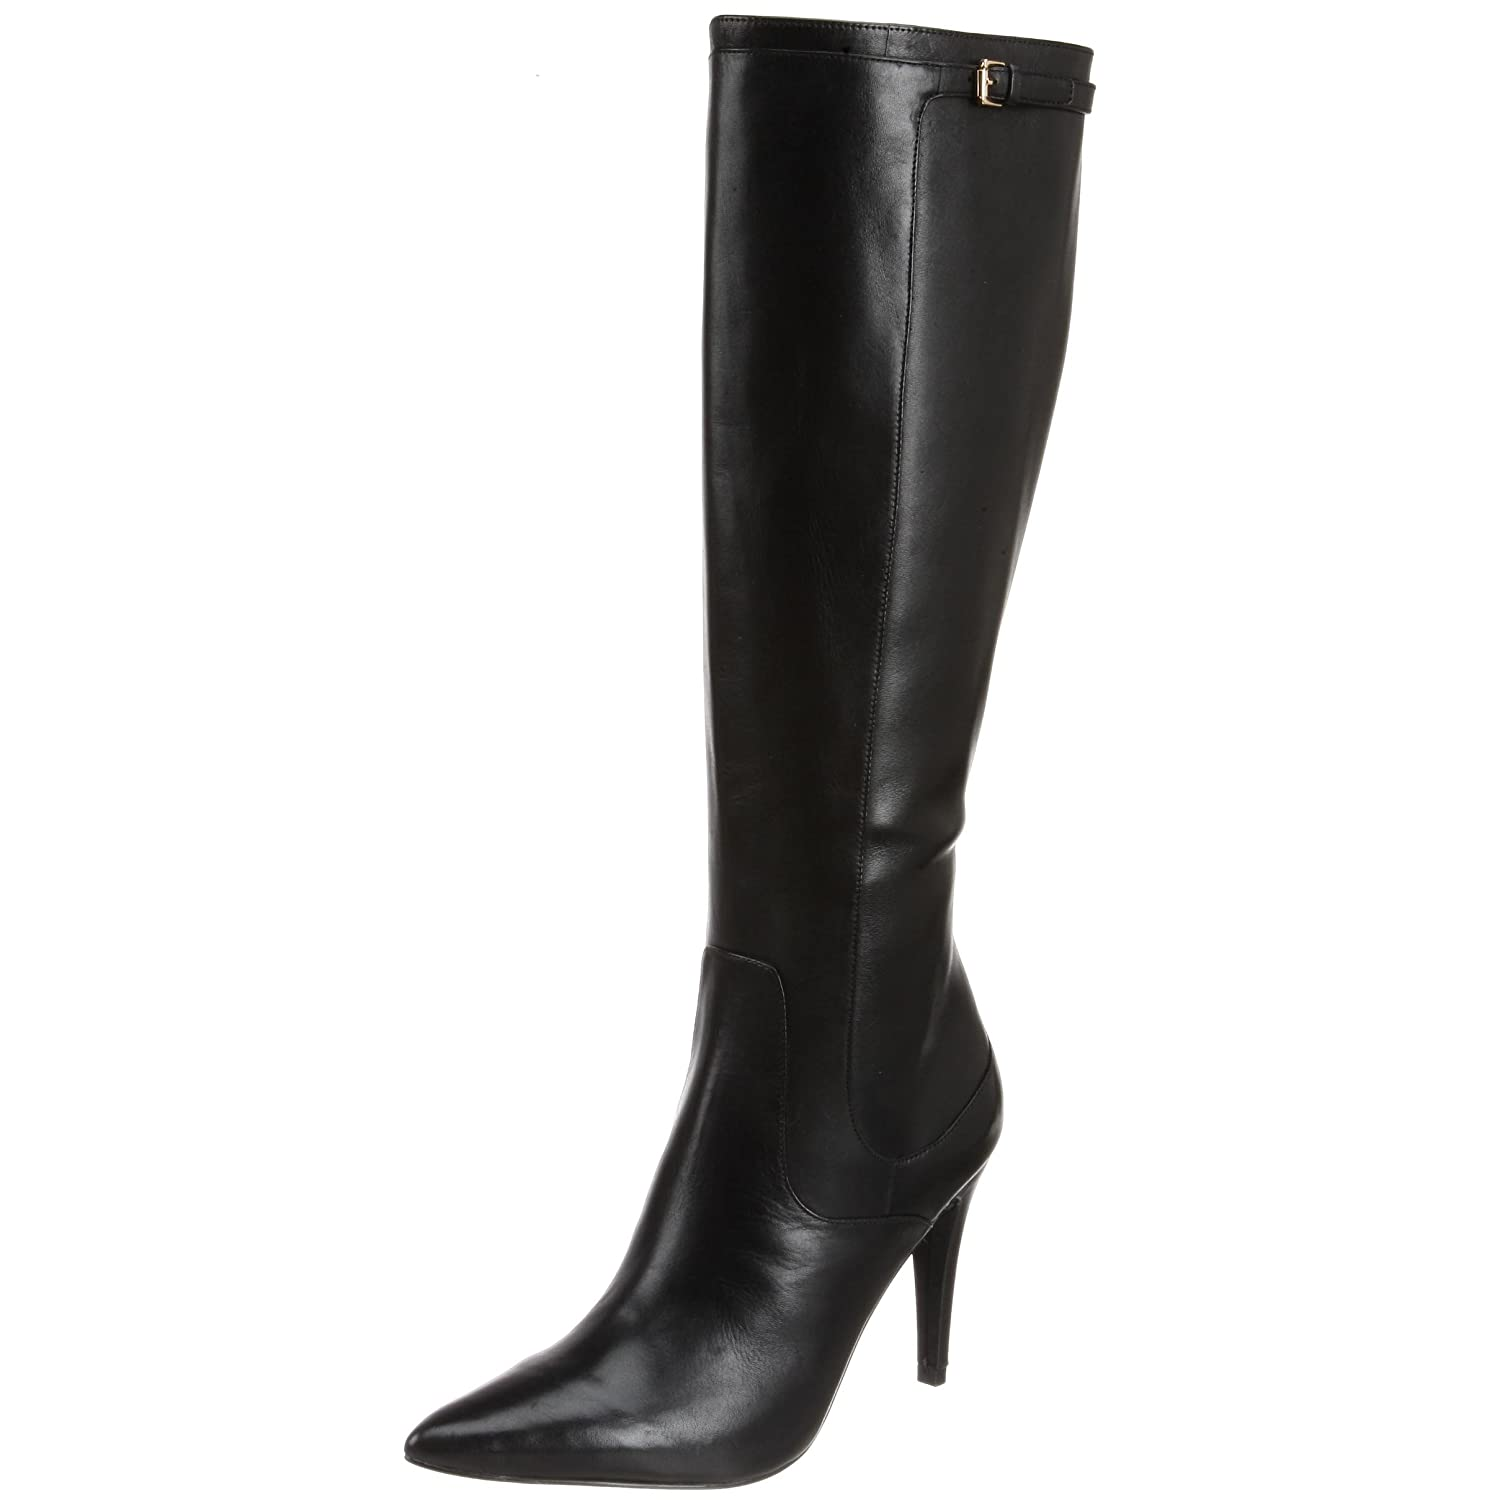 Lauren Ralph Lauren - Nicole Knee-High Boot from endless.com